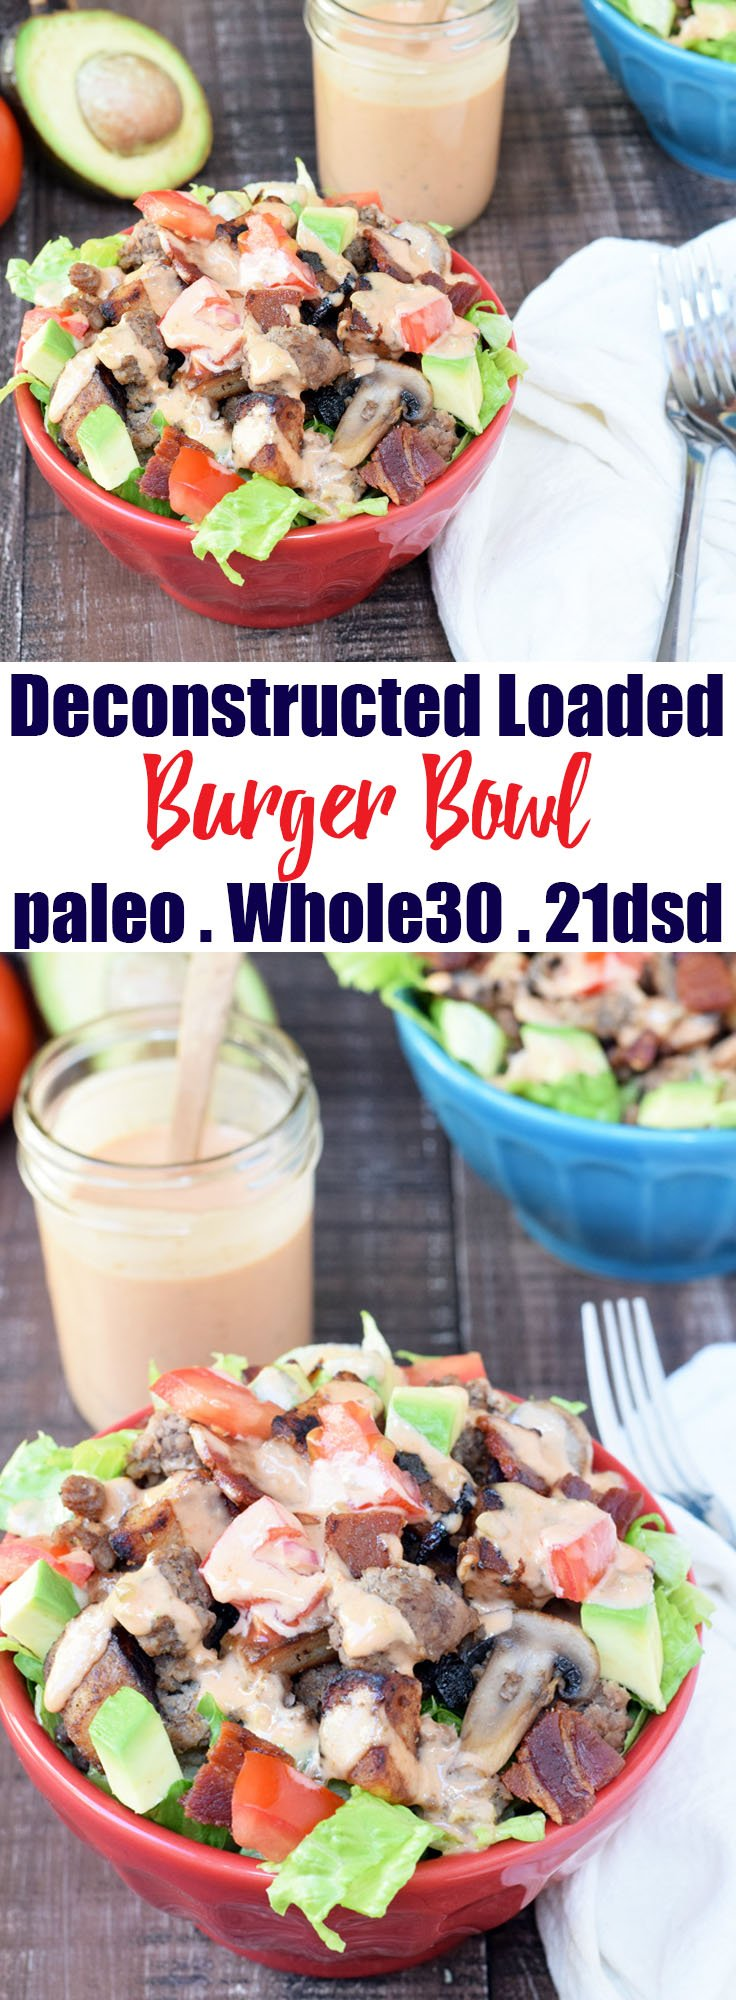 Deconstructed Loaded Burger Bowl